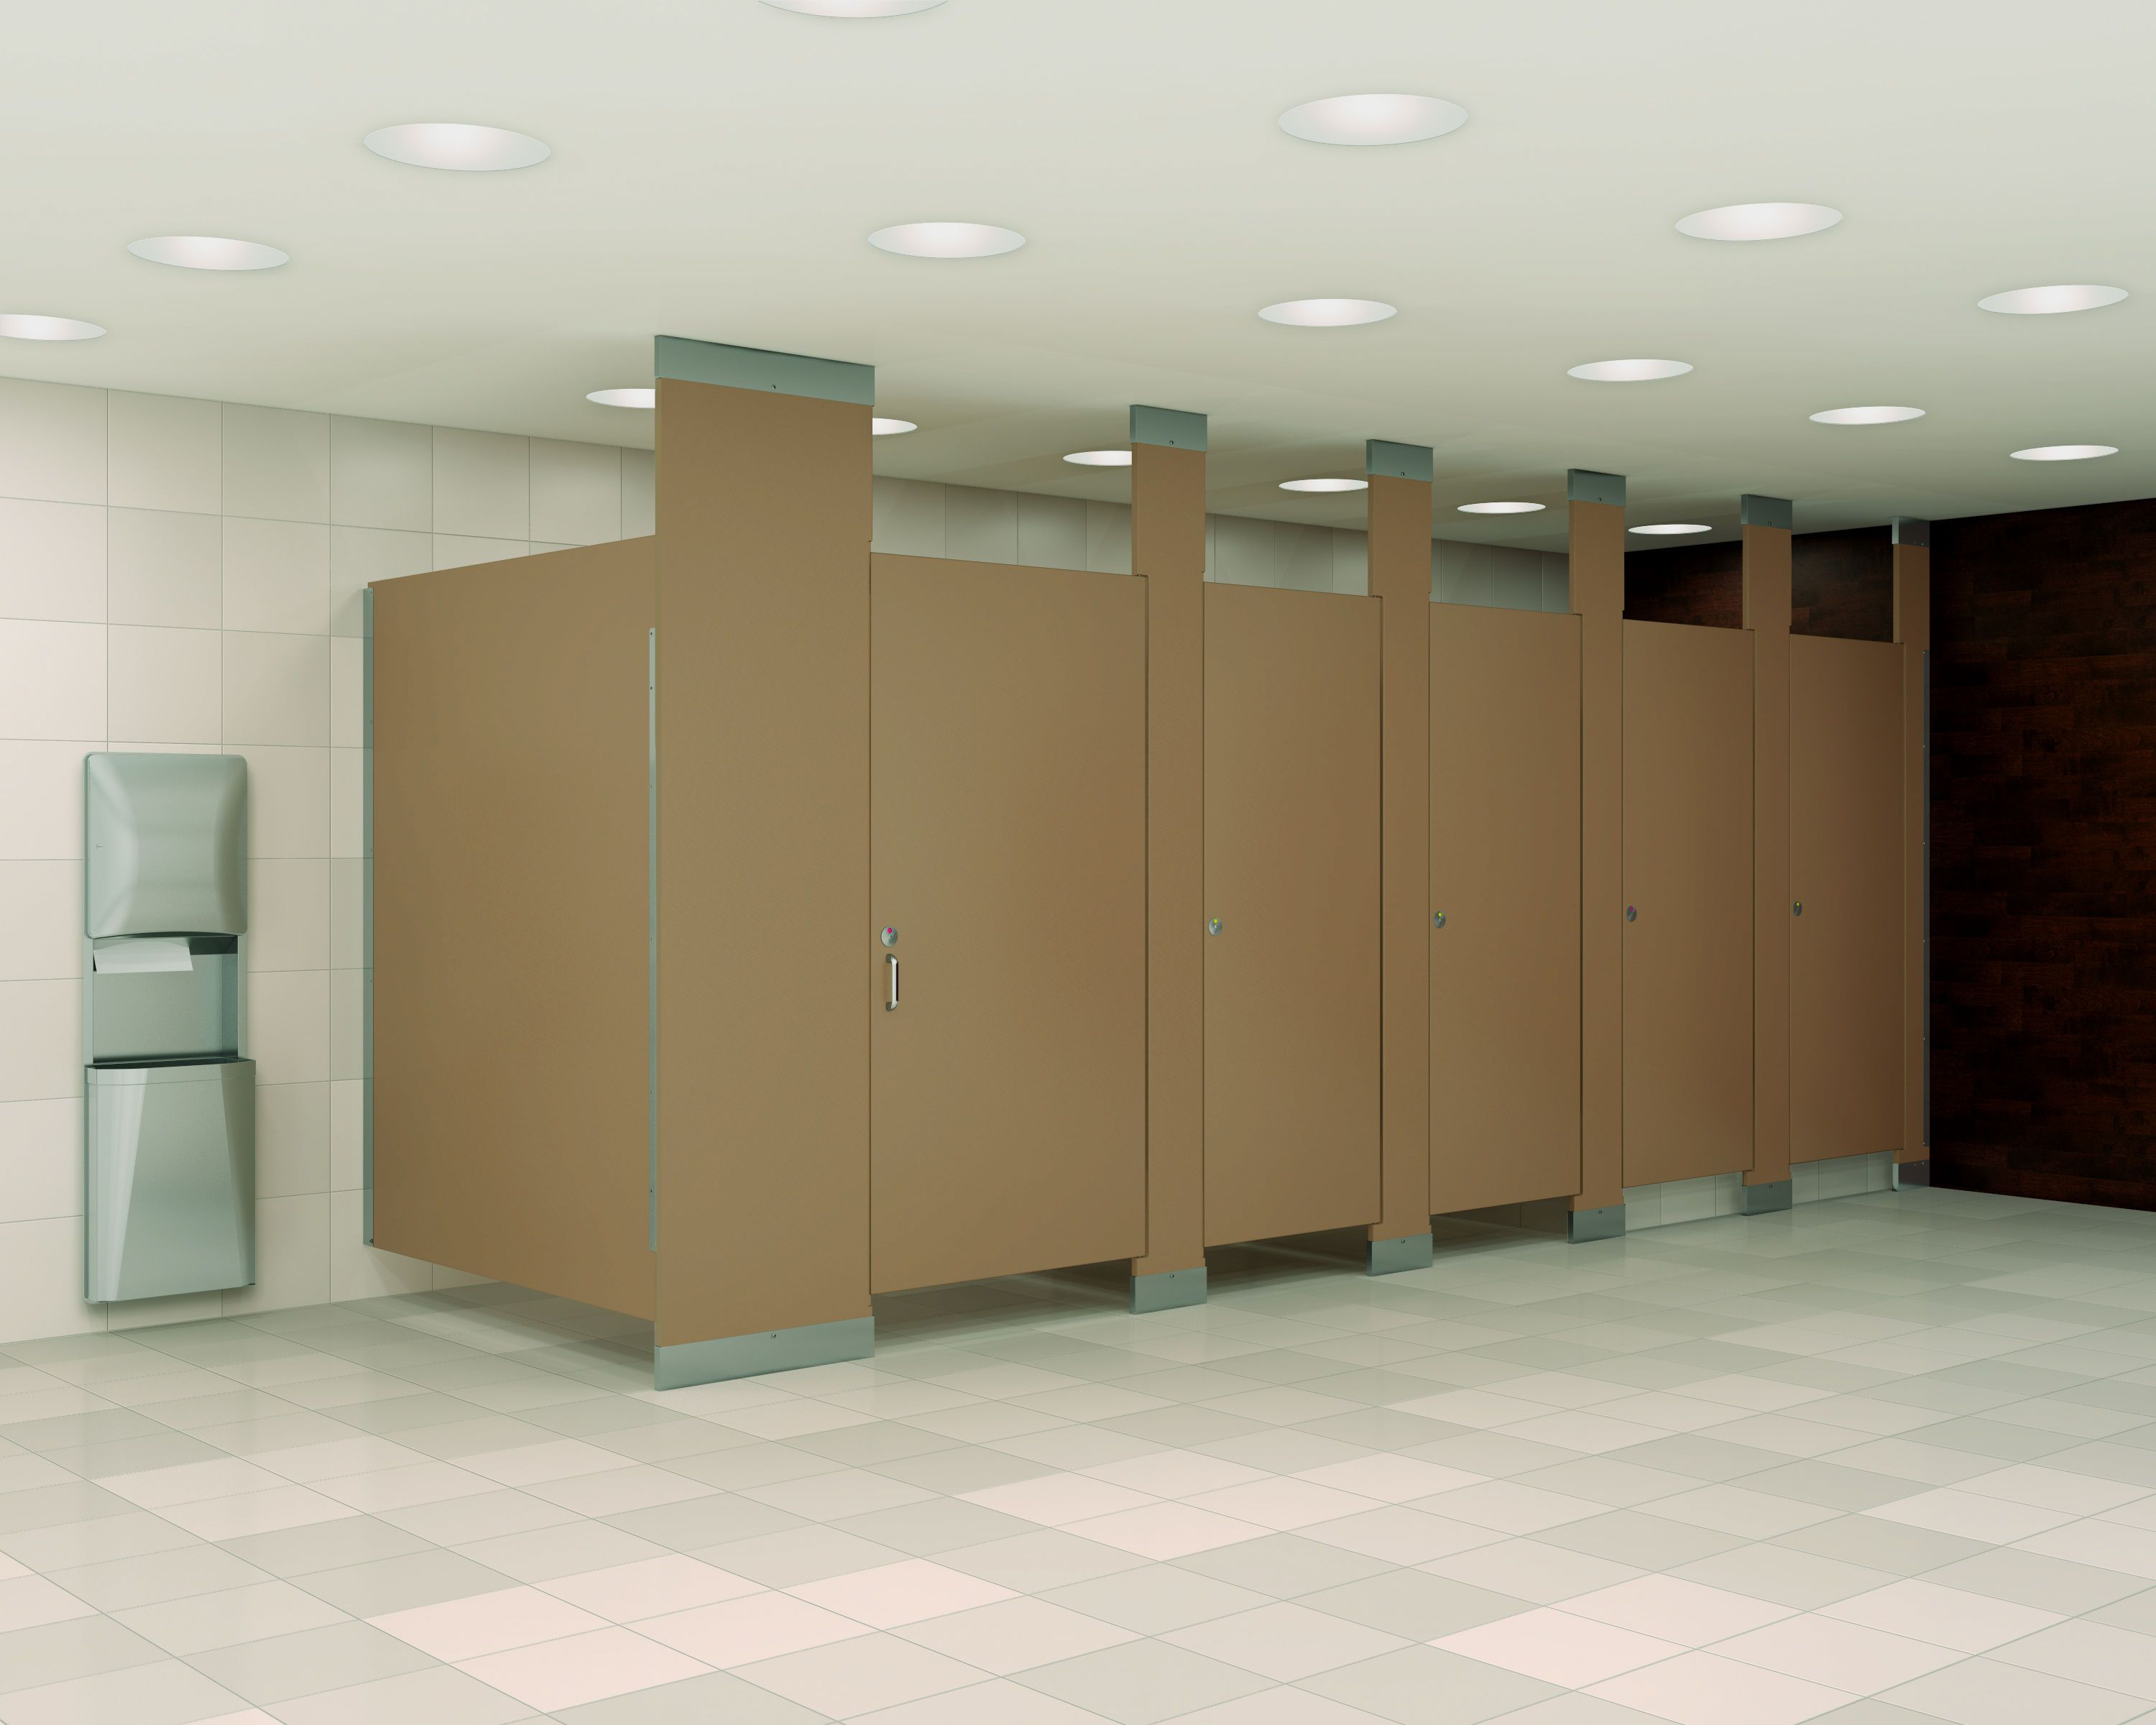 The Most Popular Material Choices For Stall Dividers For Commercial - Bathroom partitions prices